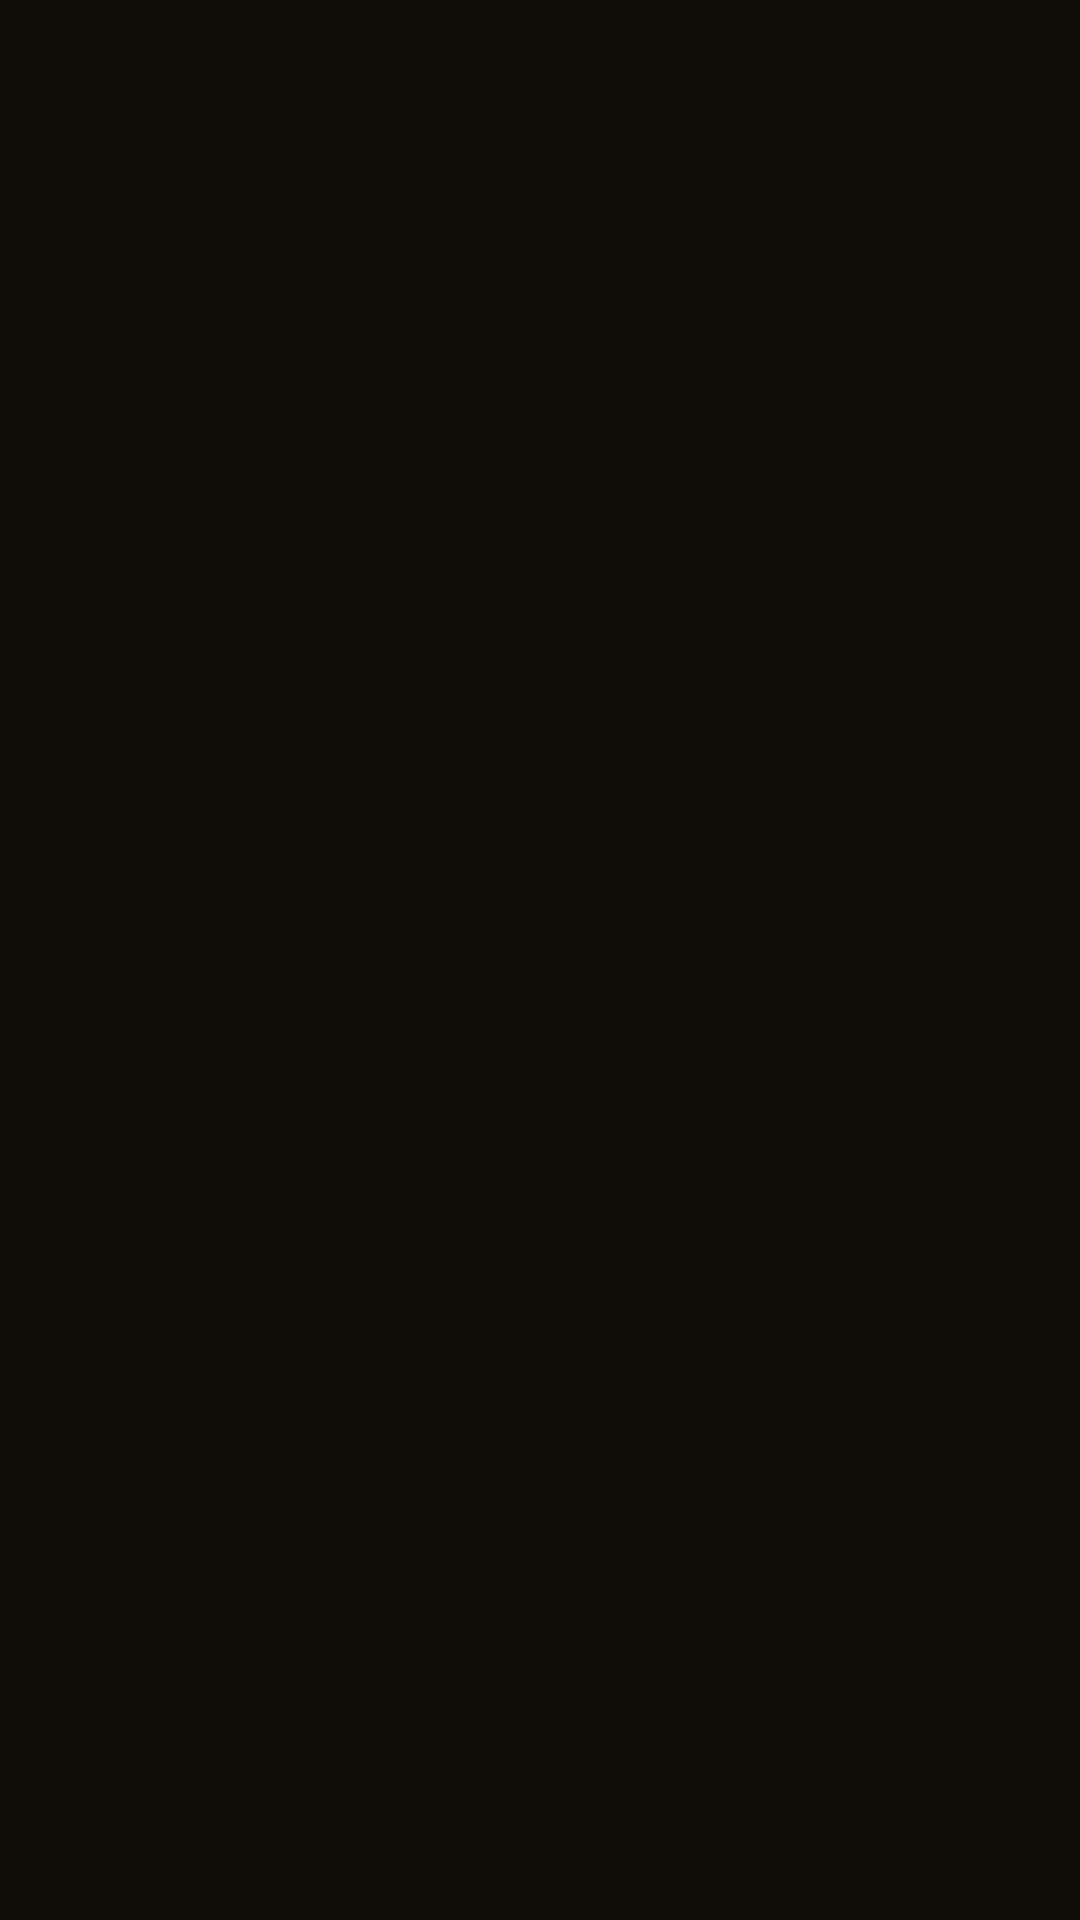 1080x1920 Smoky Black Solid Color Background